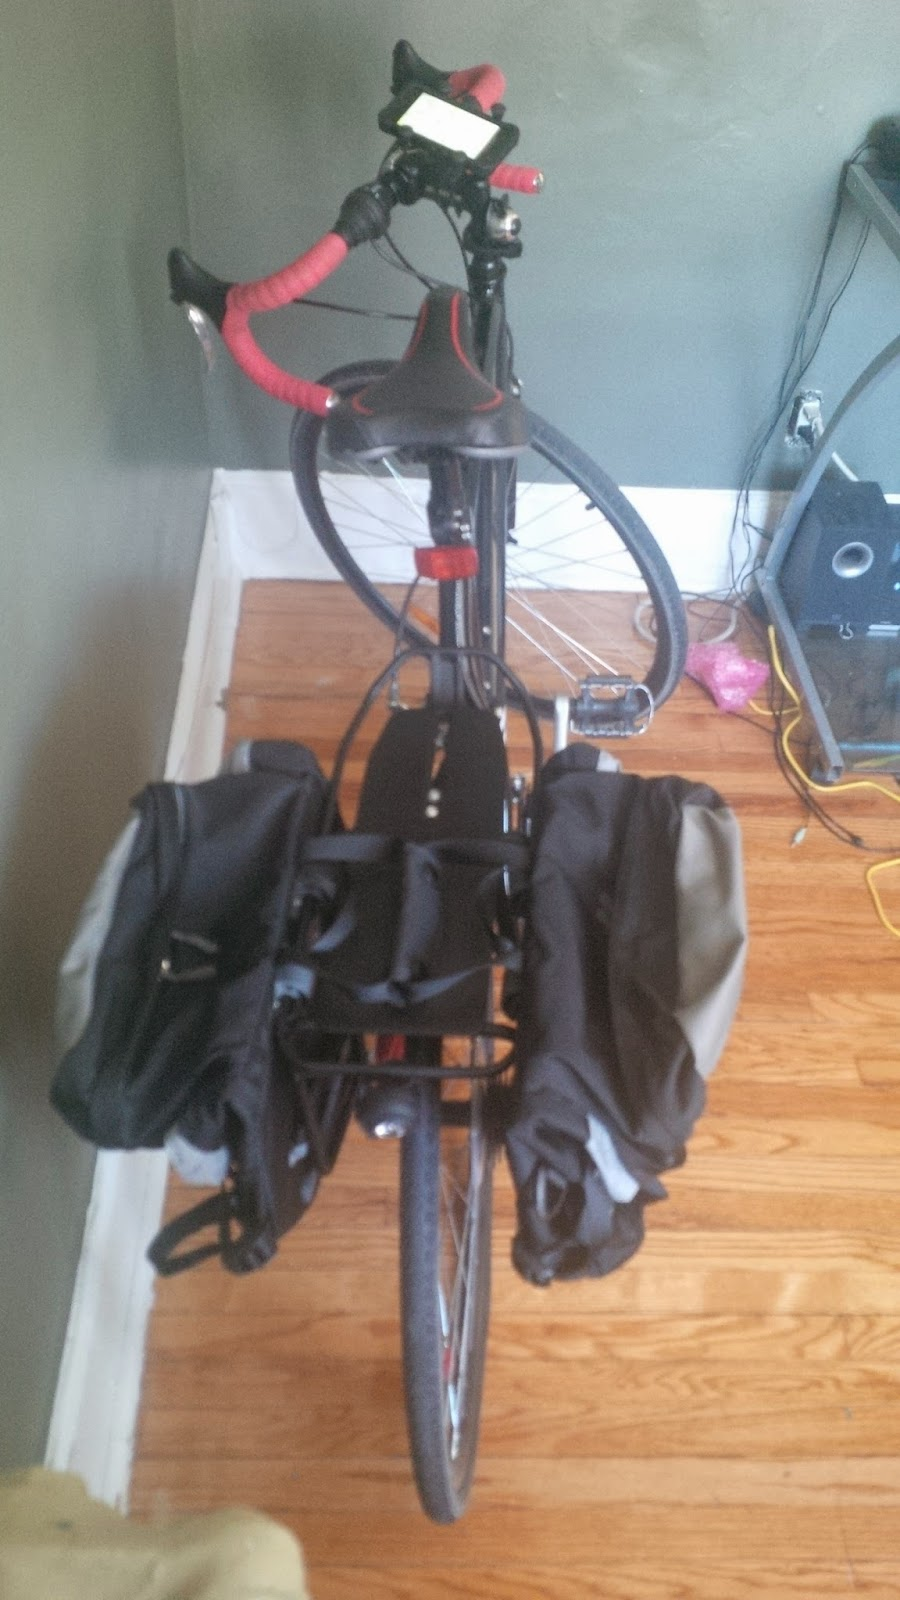 My bike set up (rear rack, panniers and cell phone mount)